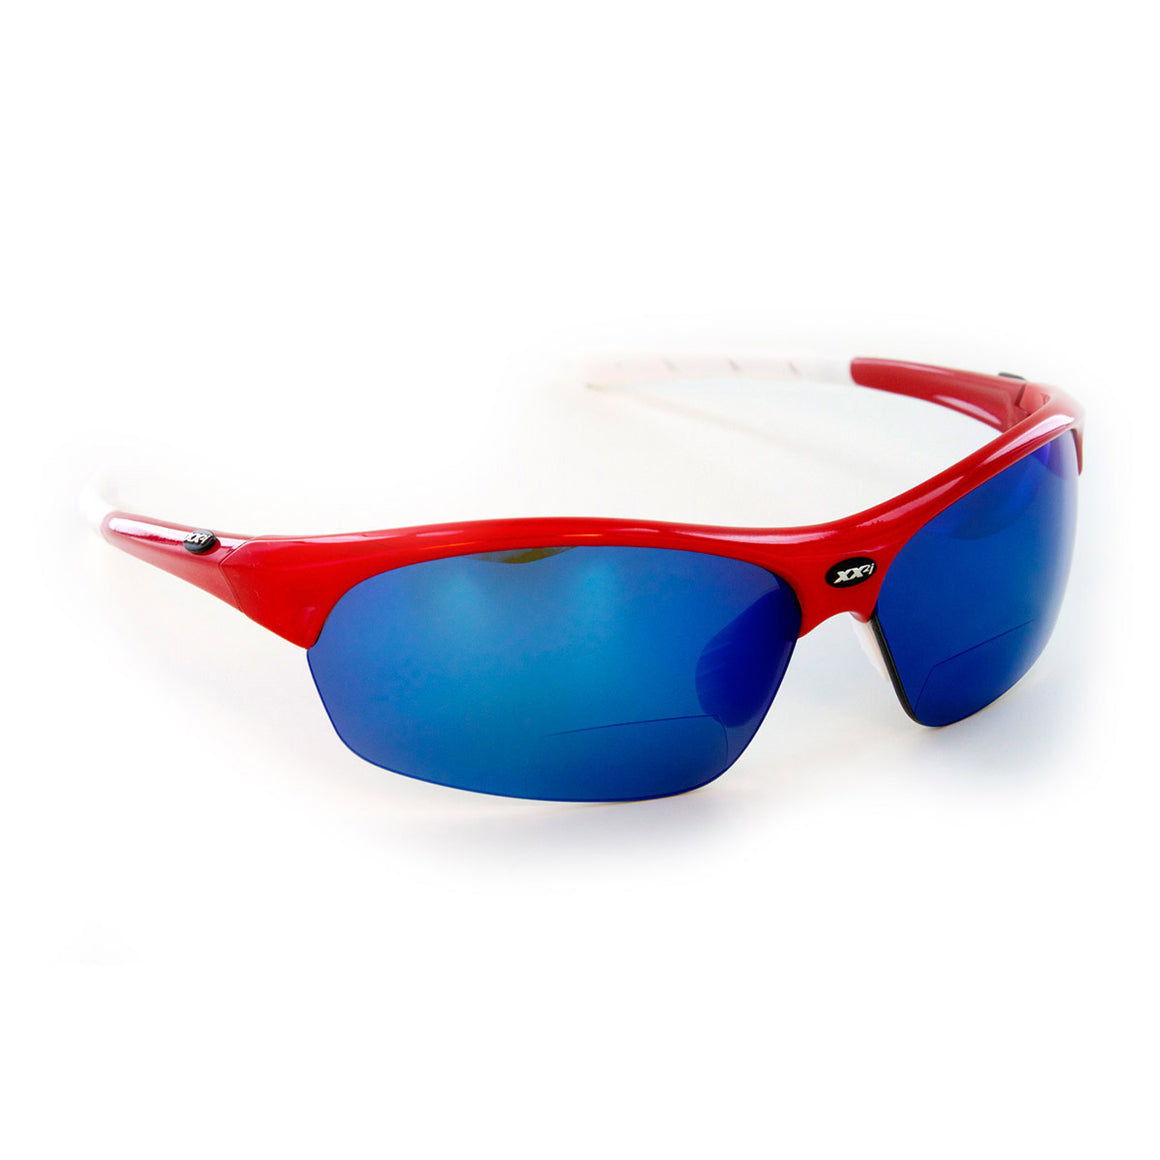 France1 Red Polarized Sport Reader